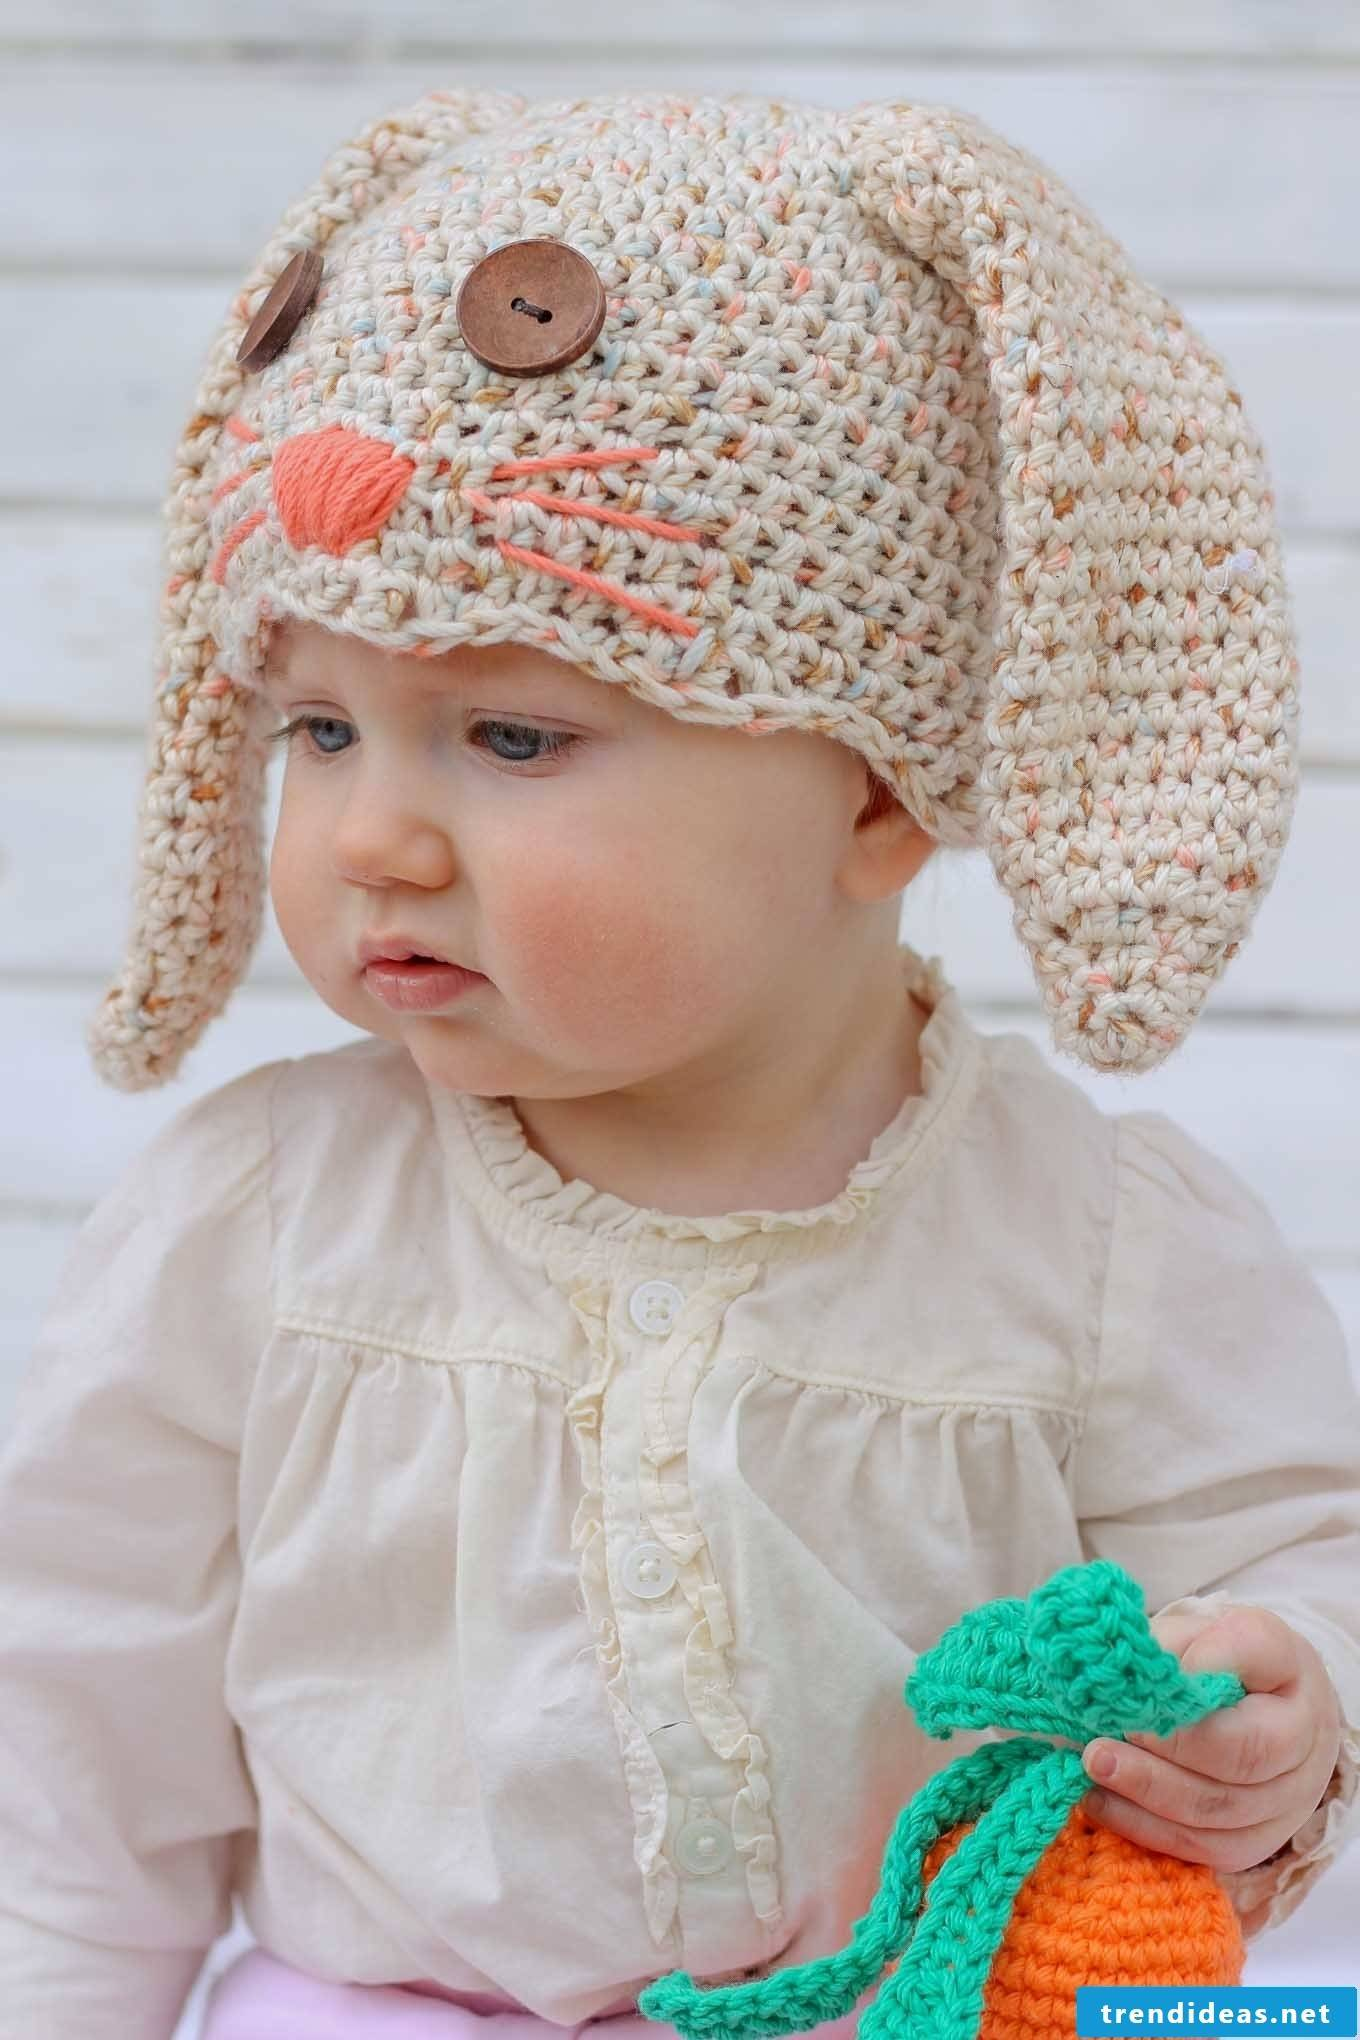 The no bunny crochet hat